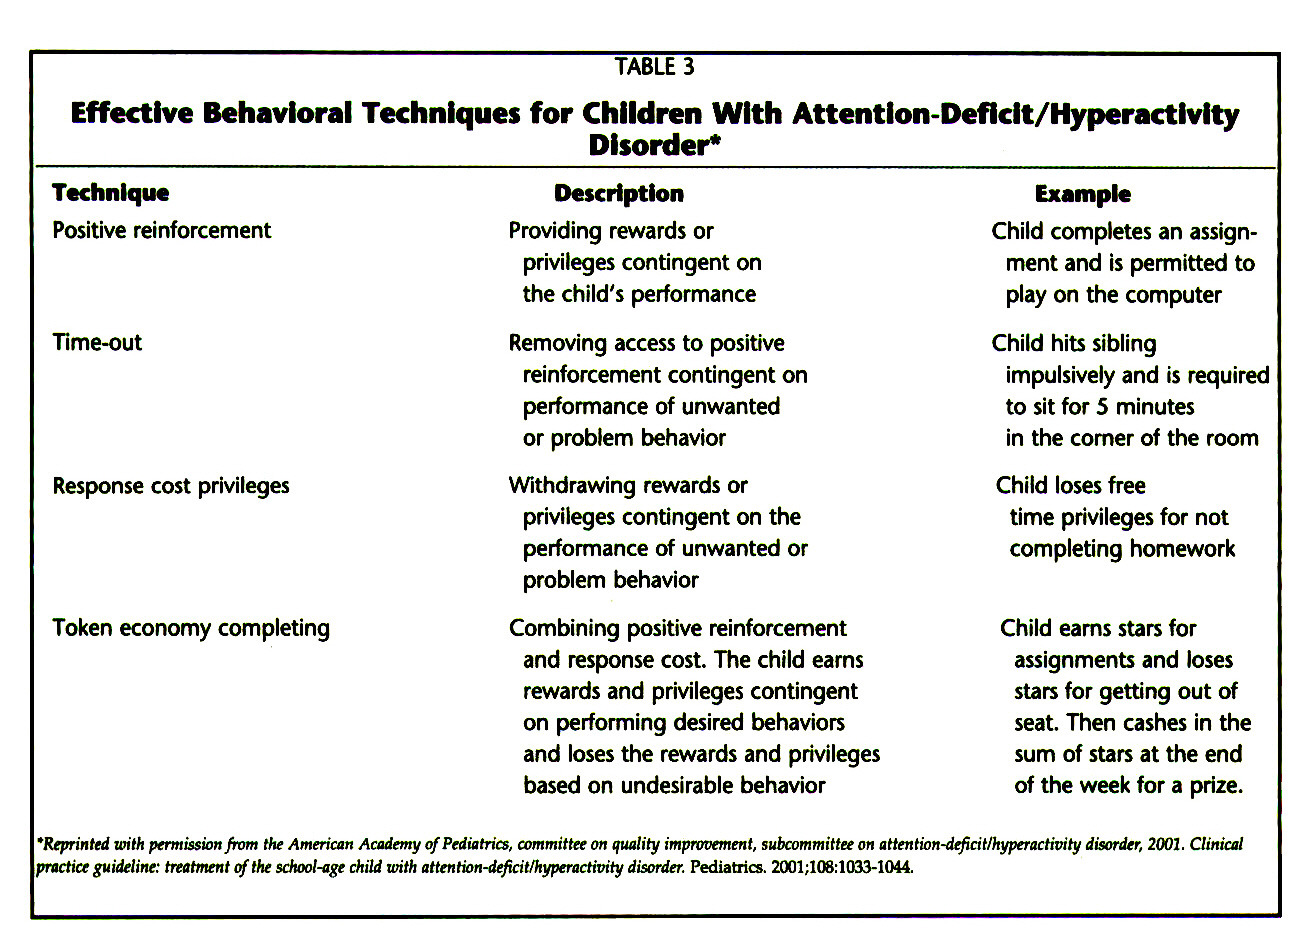 TABLE 3Effective Behavioral Techniques for Children With Attentlon-Deflclt/Hyperactlvlty Disorder*